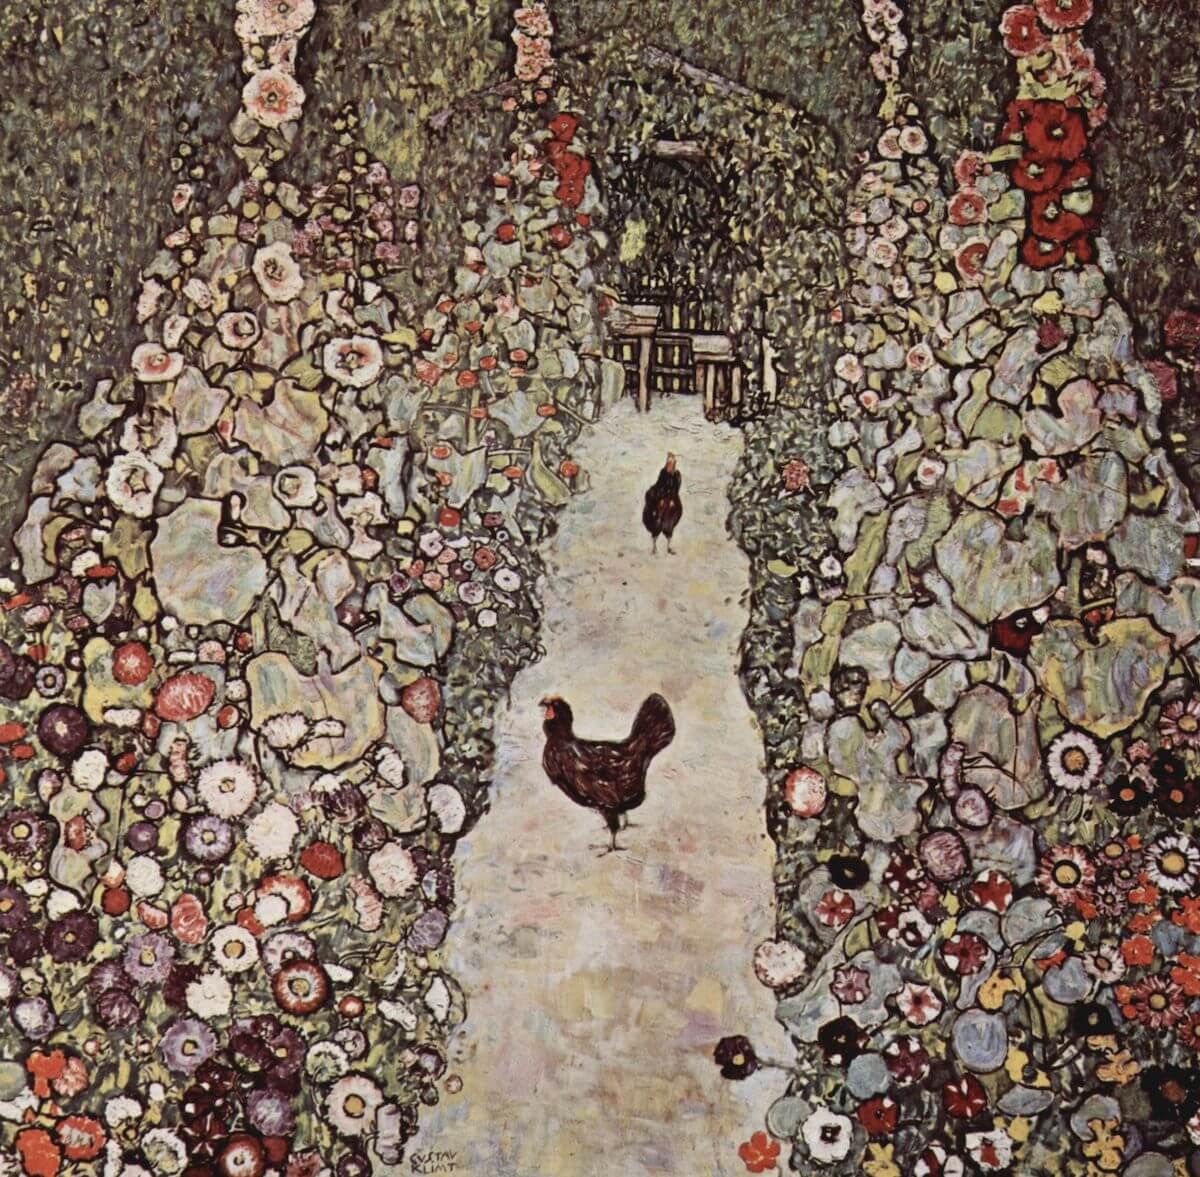 Garden with Roosters, 1917 by Gustav Klimt